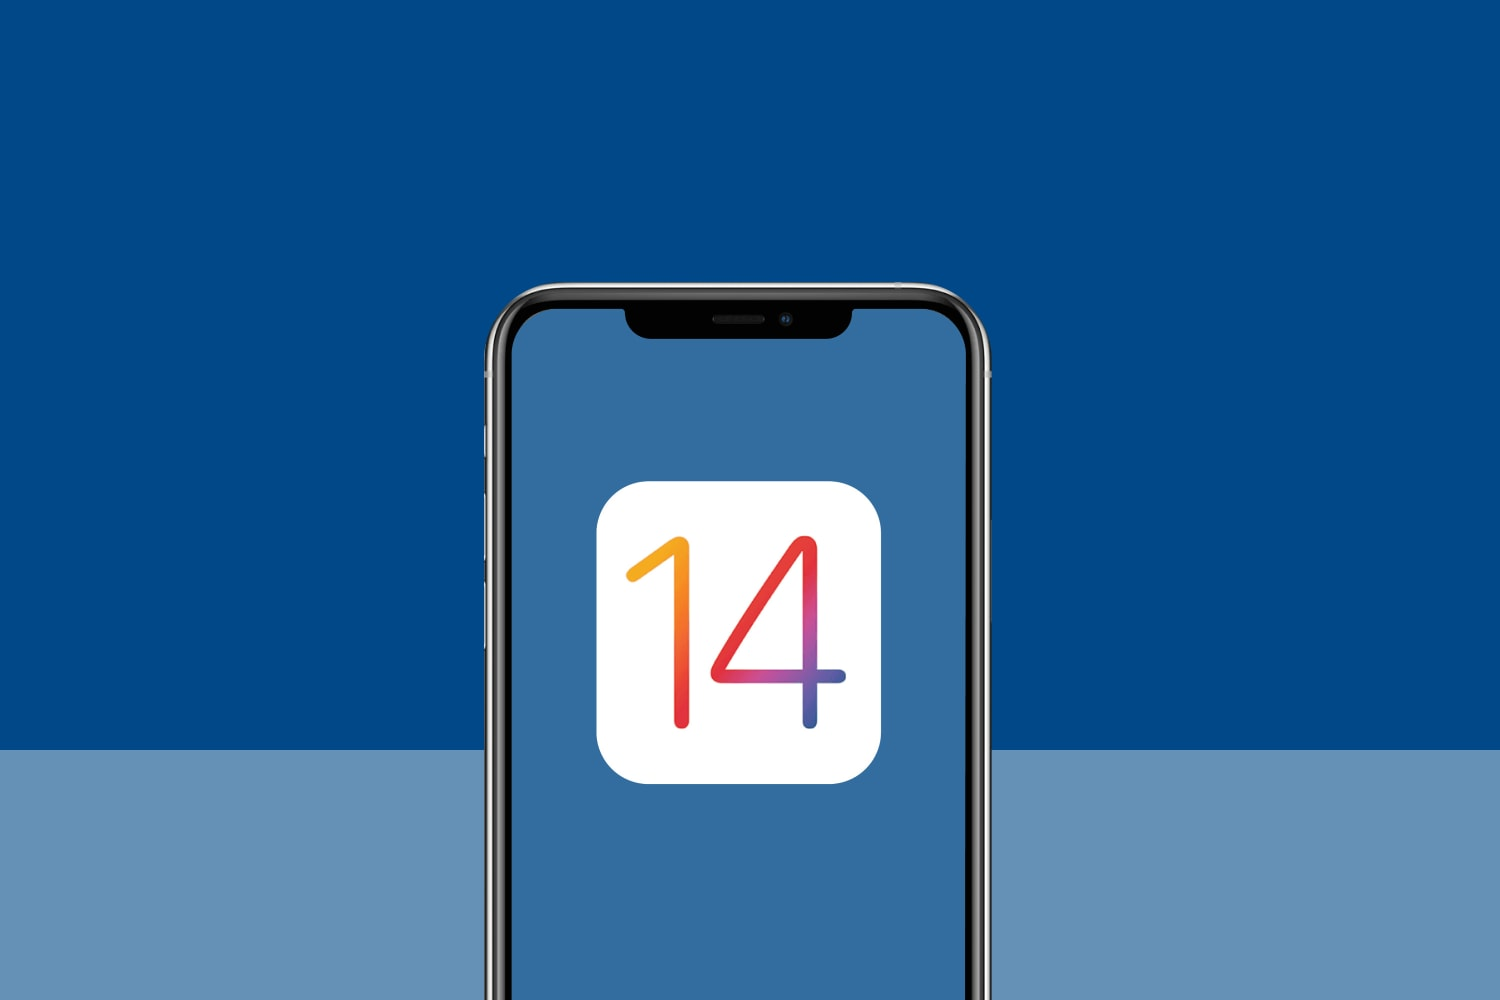 ios-14-the-customization-and-picture-in-picture-shortcuts-and-bug-issues-you-missed-20200923-1